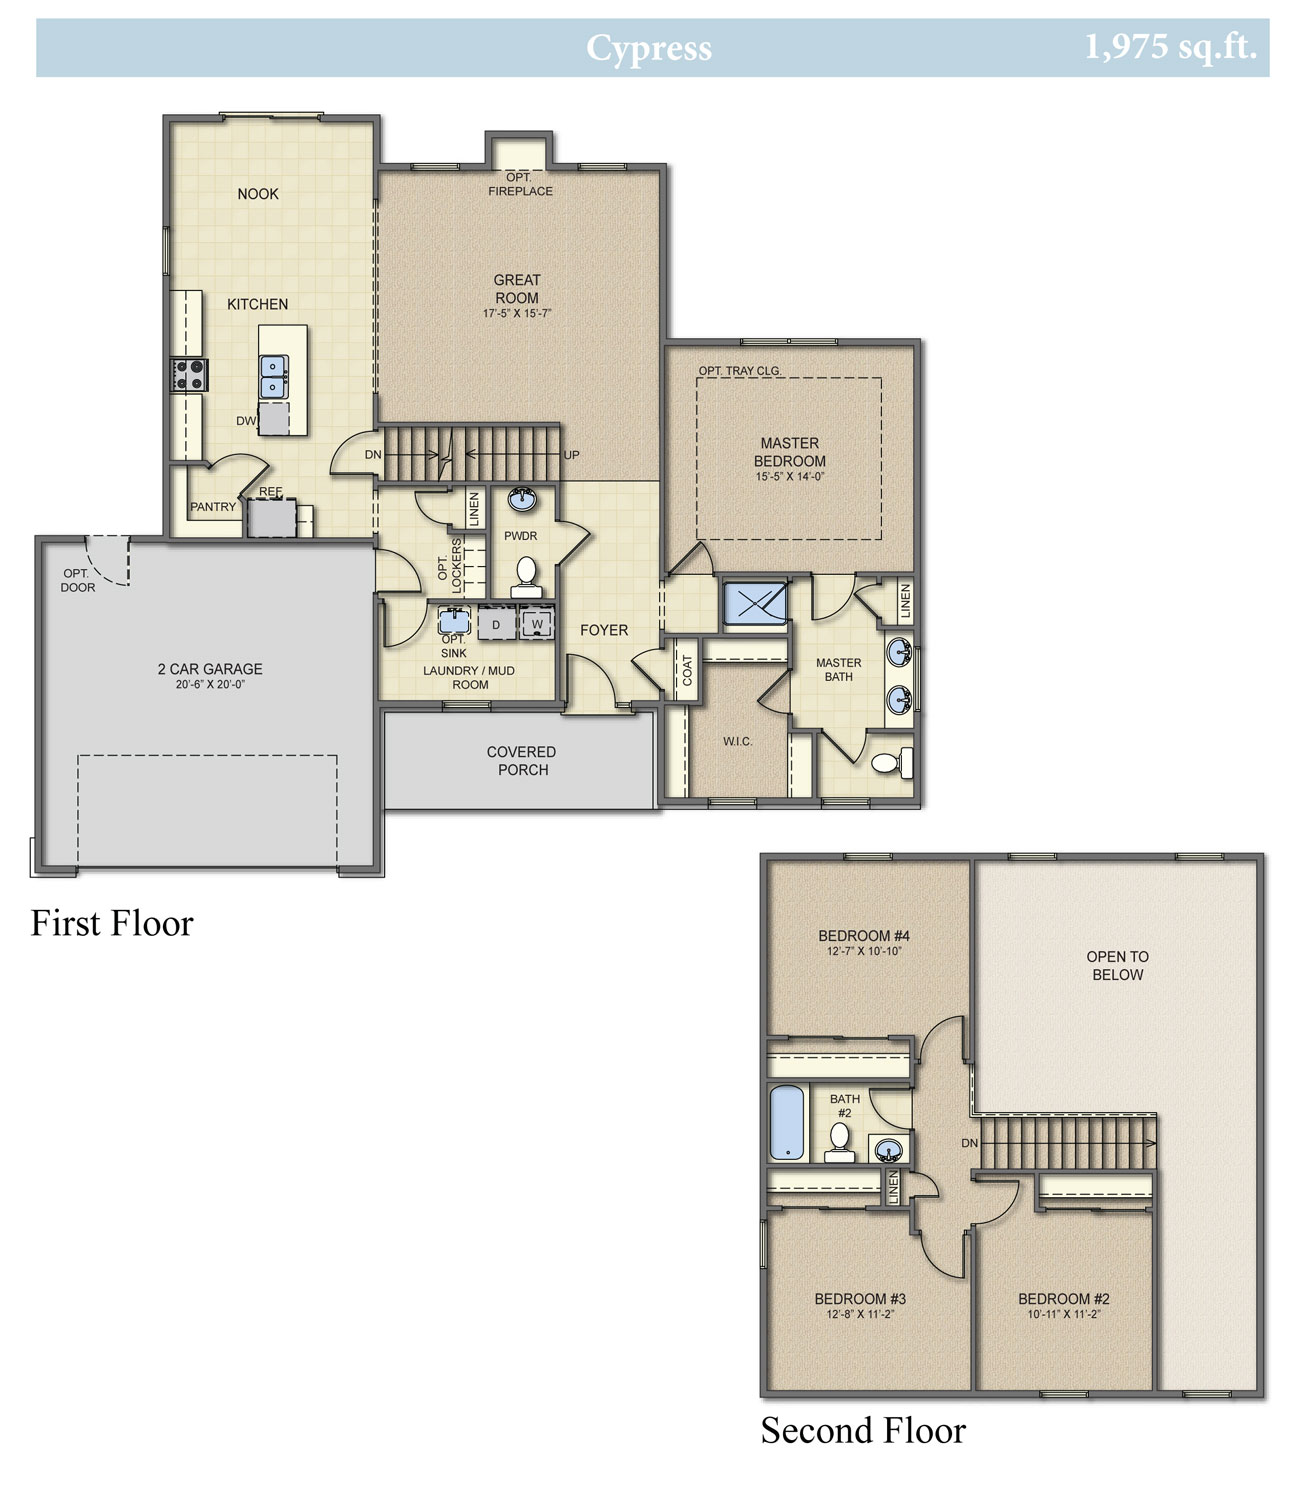 Cypress – All Plans Are Fully Customizable!